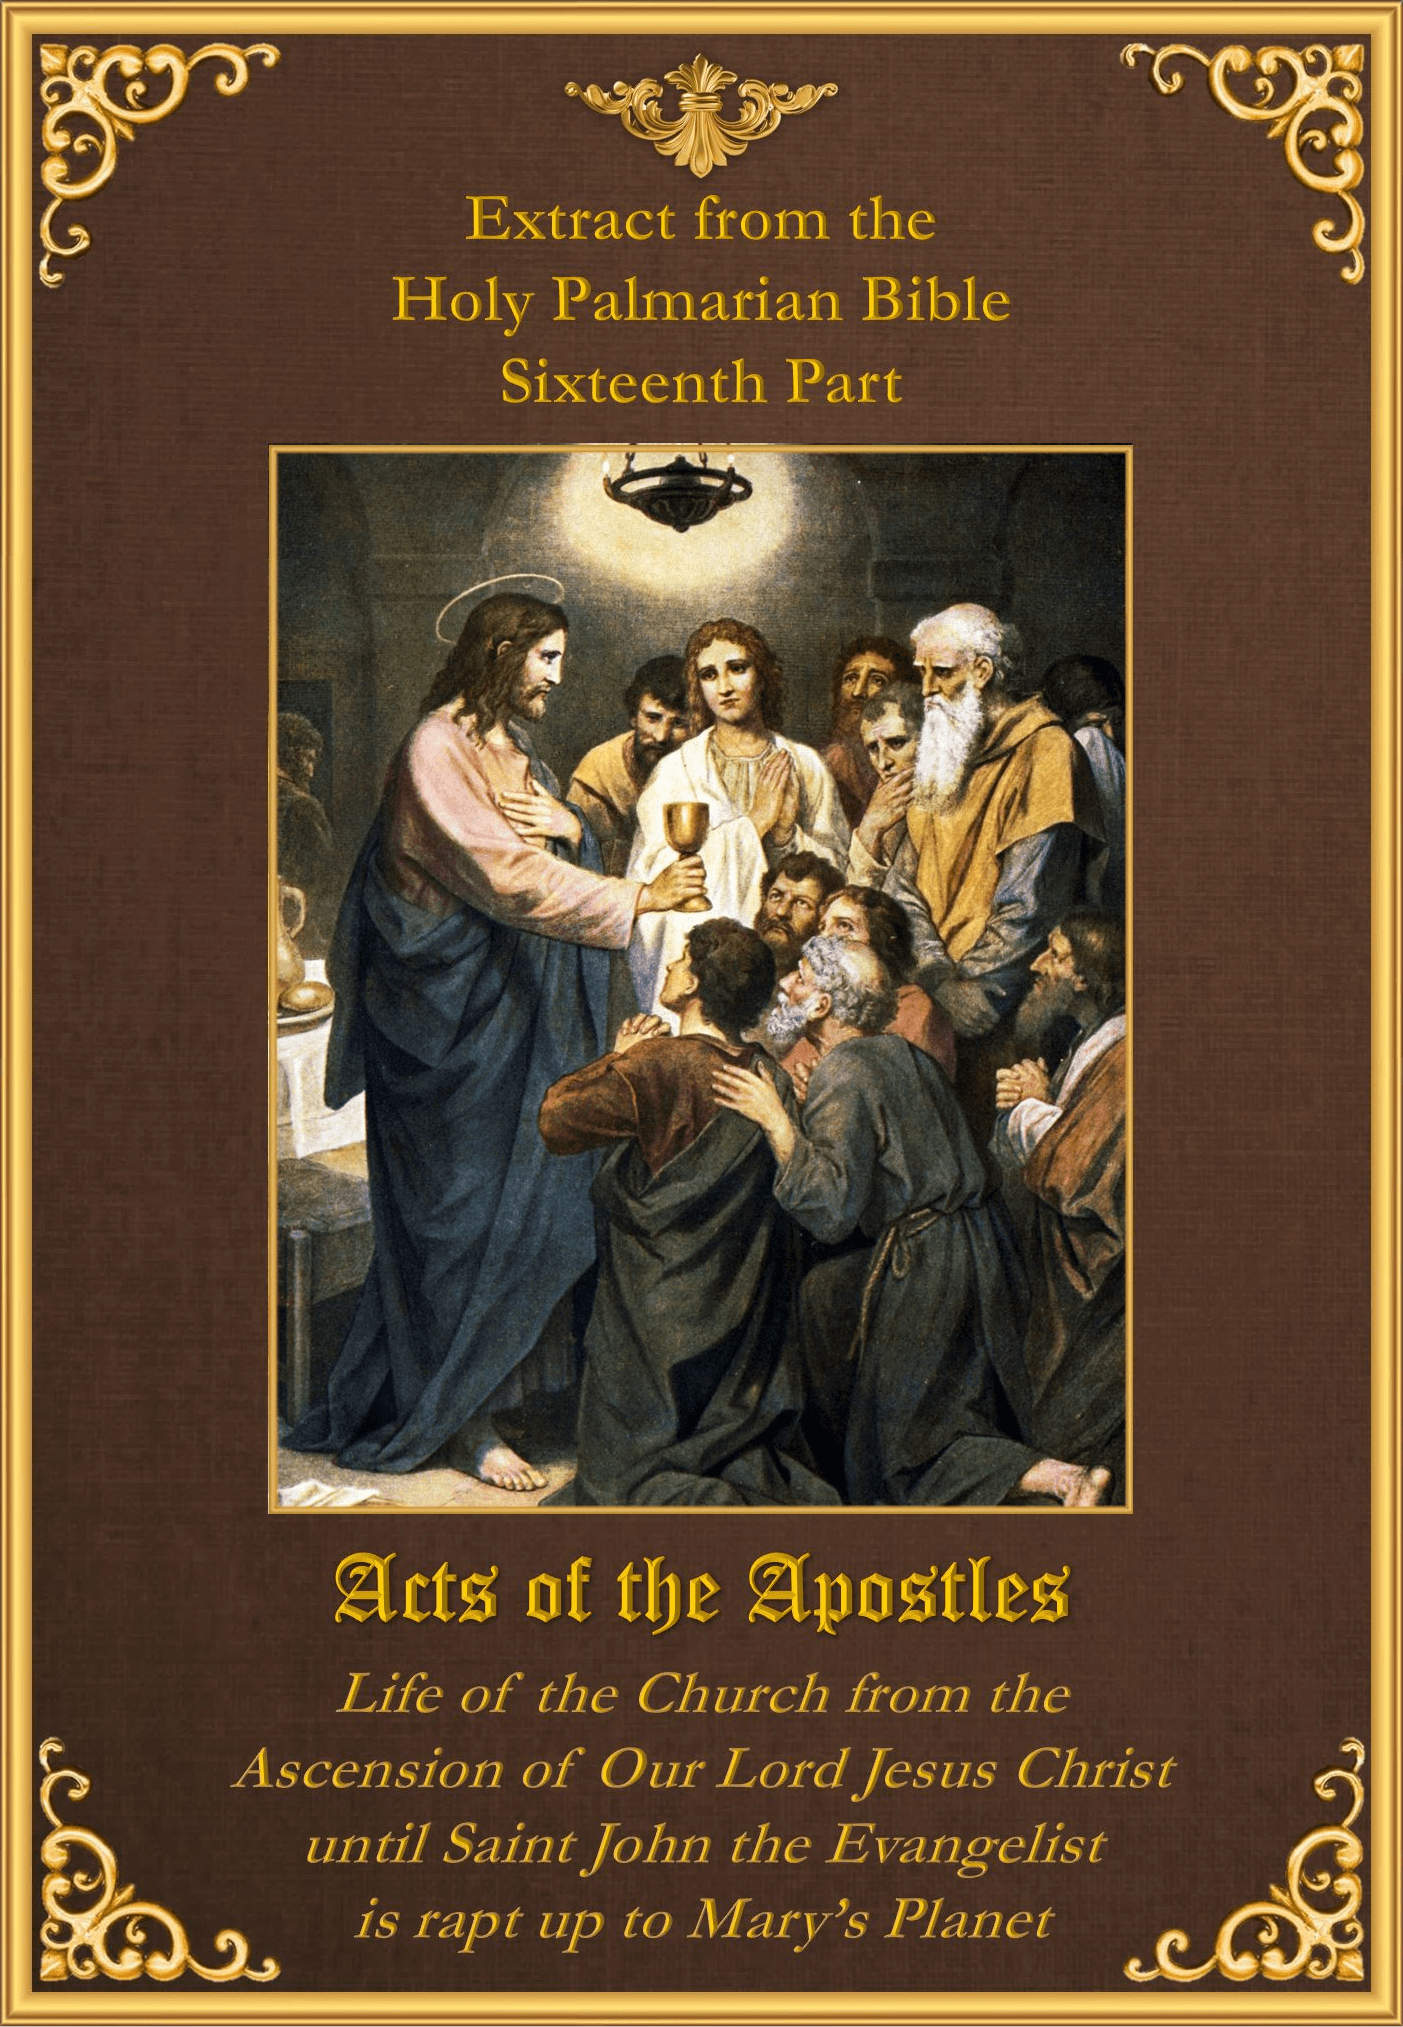 "<a href=""/wp-content/uploads/2019/06/Acts-of-the-Apostles-English.pdf"" title=""Acts of the Apostles"">Acts of the Apostles <br><br>See more</a>"